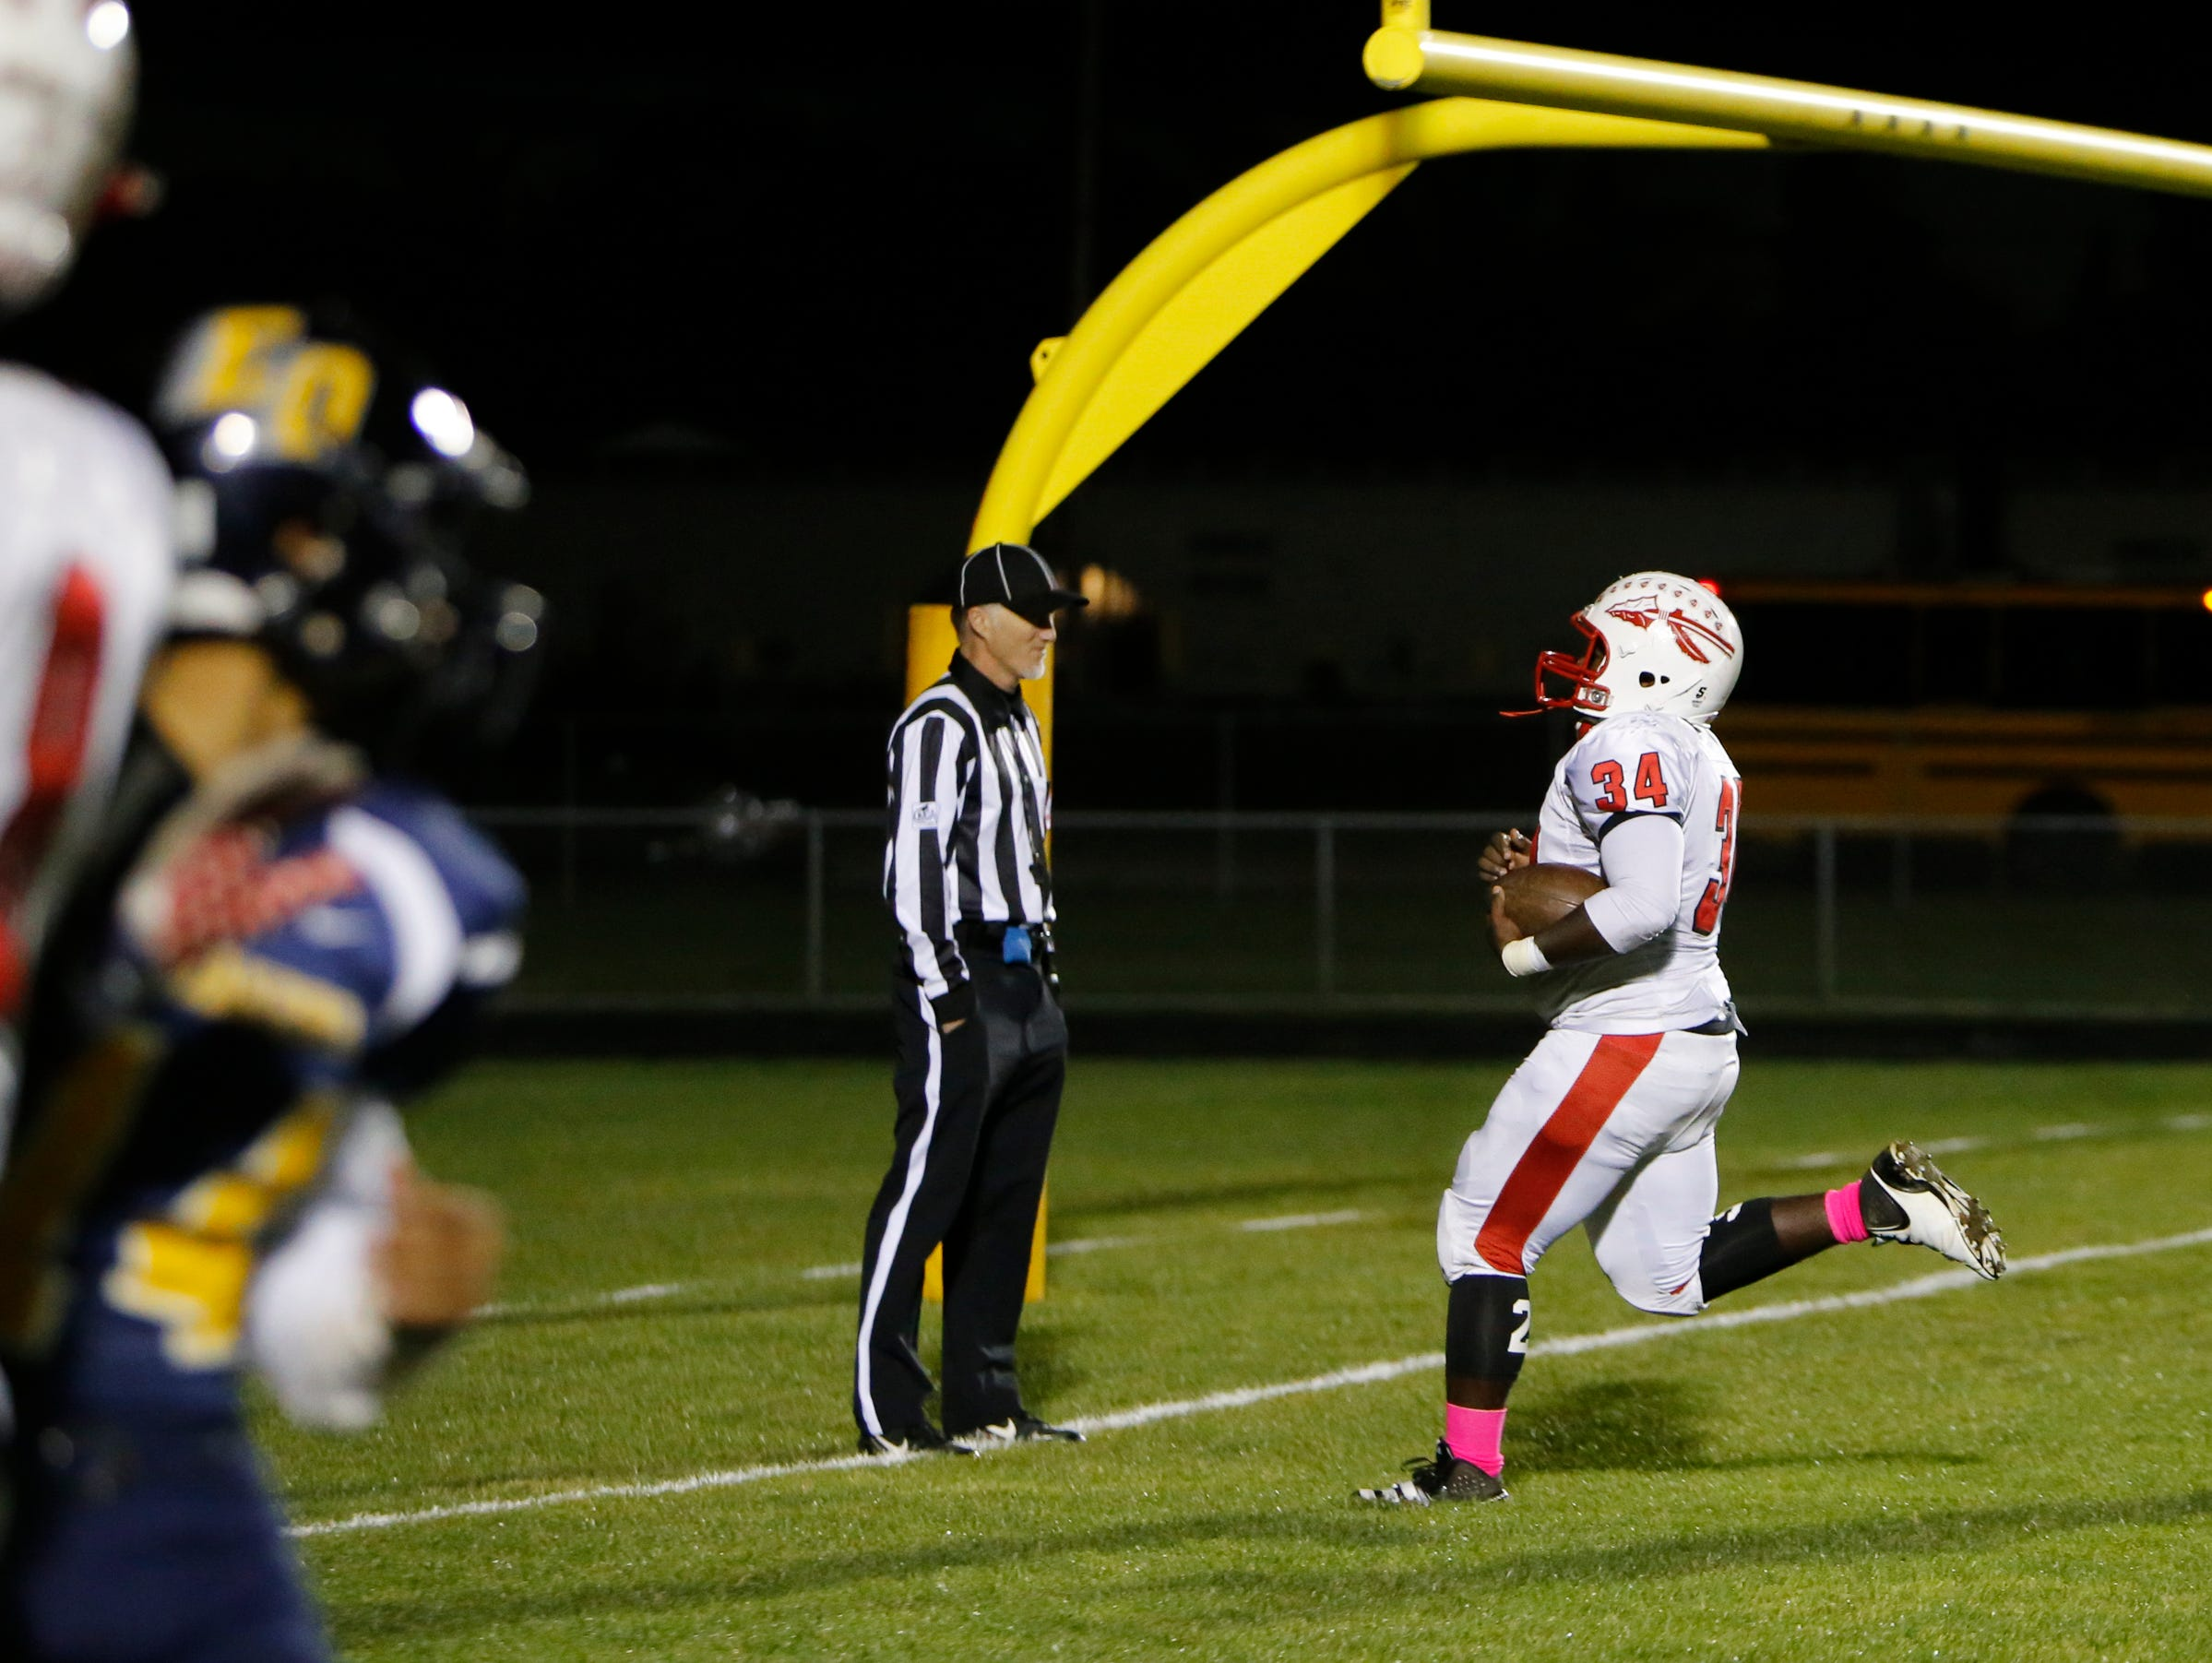 Sexton's Byron Pierce scoots into the end zone for a touchdown Friday, October 21, 2016 against Lansing Eastern, giving the Big Reds a 12-0 first quarter lead at Sexton.